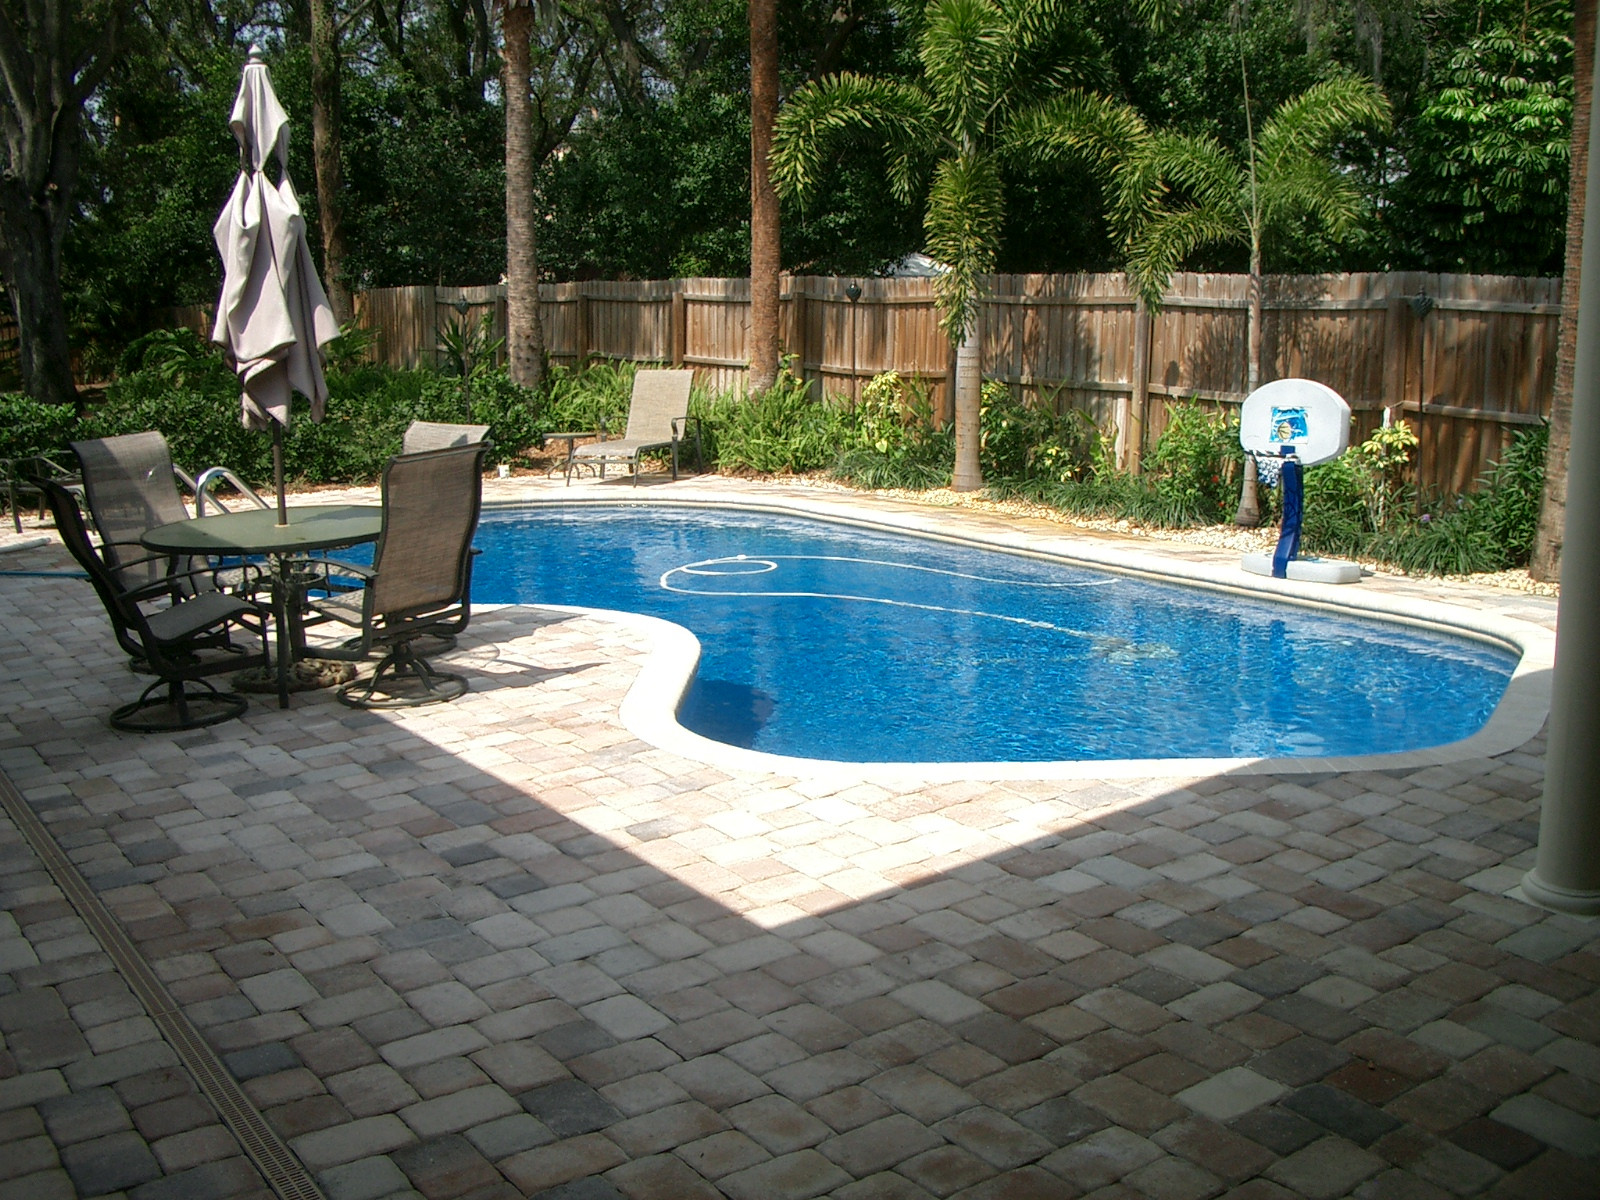 Best ideas about Pool Landscape Design . Save or Pin 35 Best Backyard Pool Ideas – The WoW Style Now.